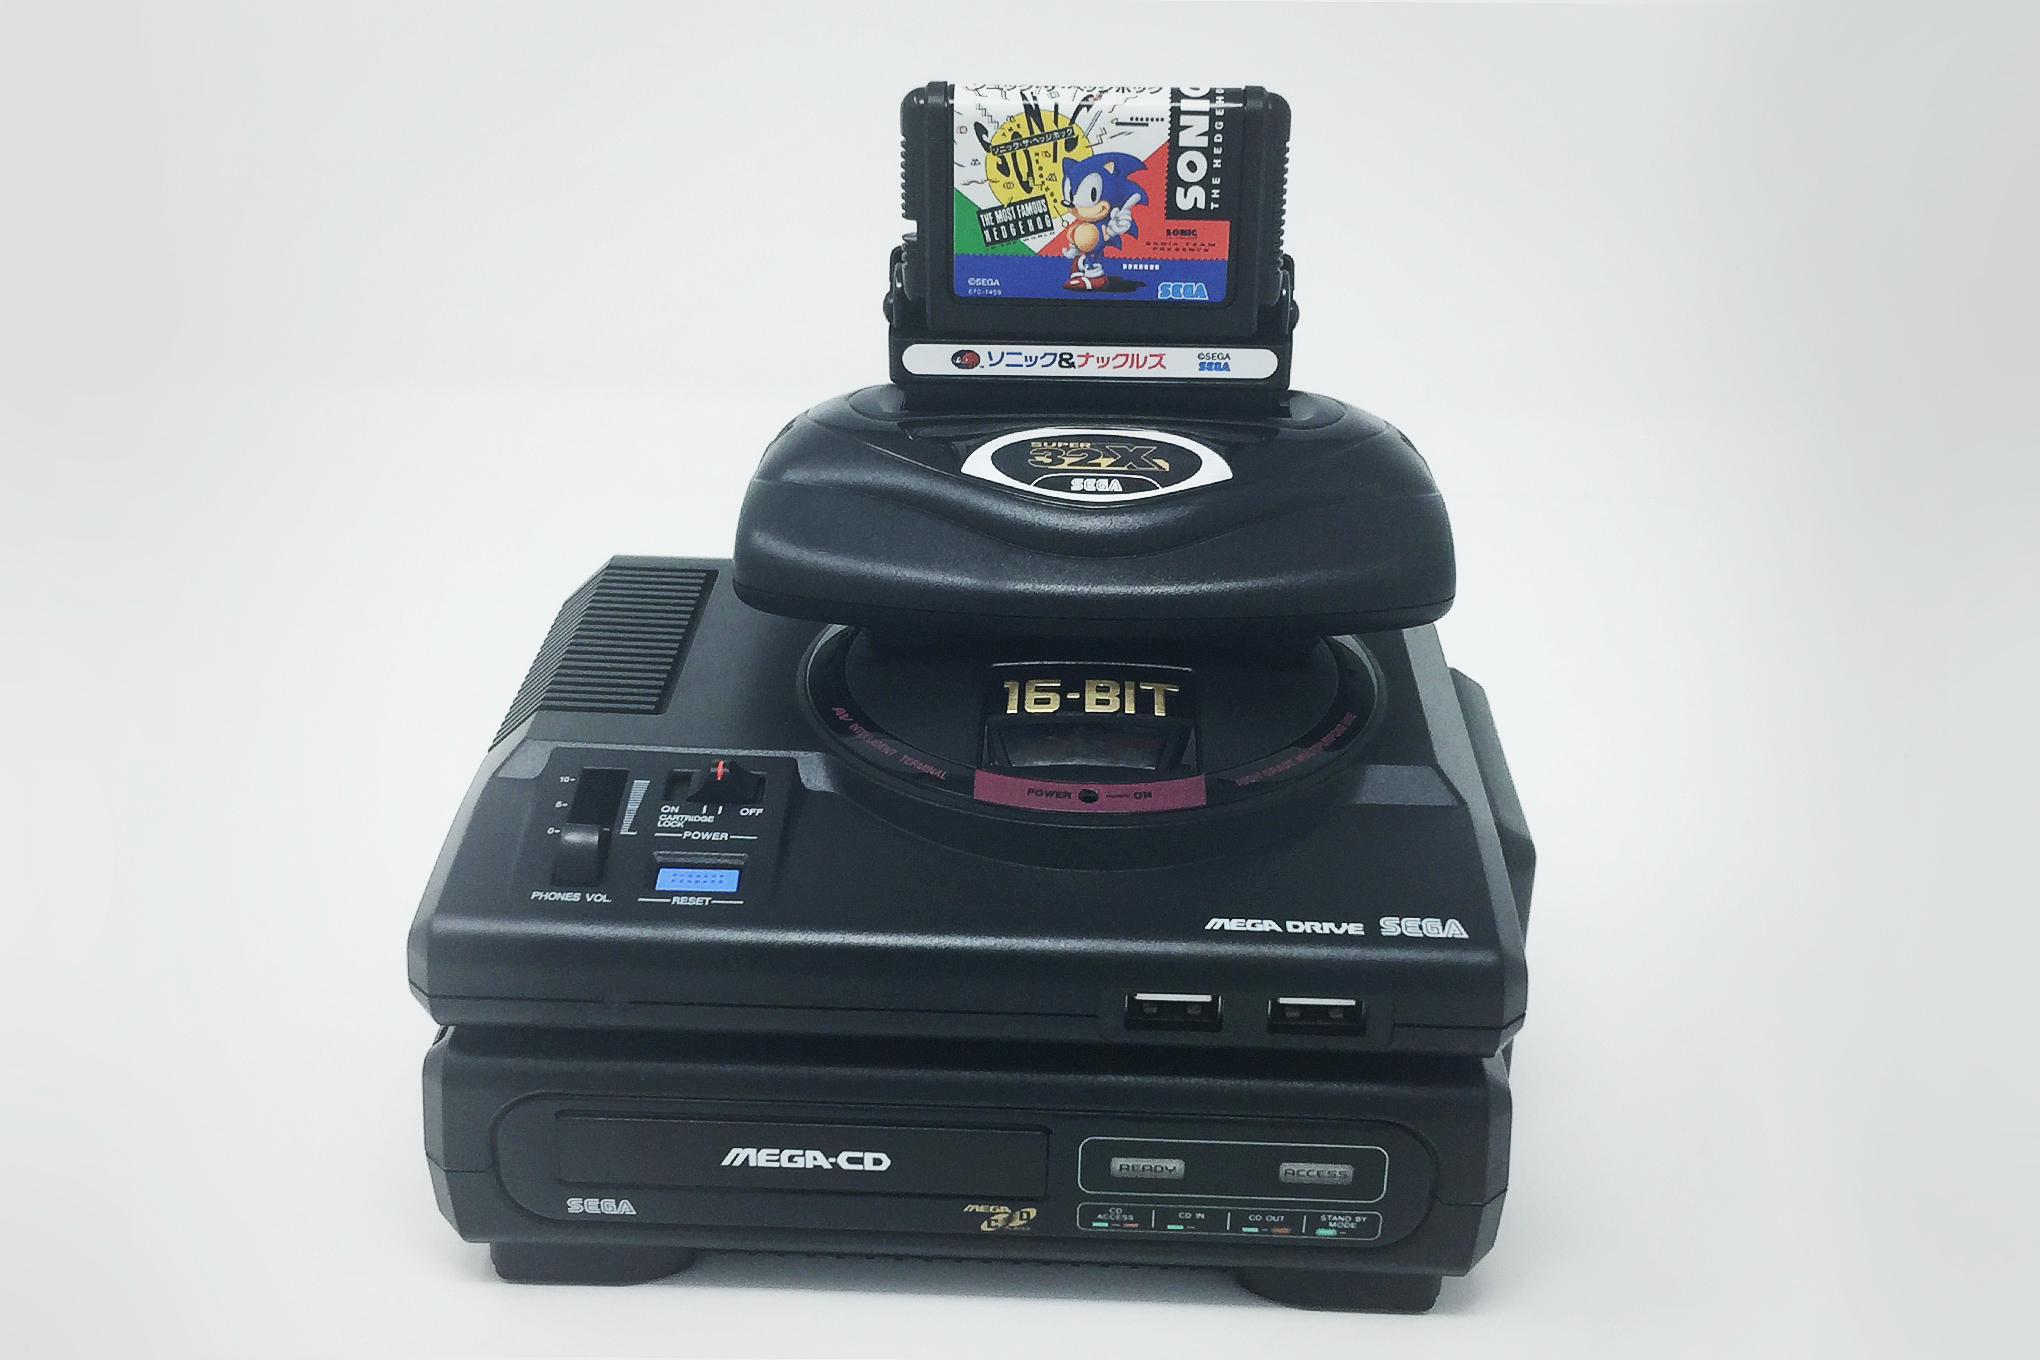 The tower of accessories that comes with the deluxe package of the Mega Drive Mini